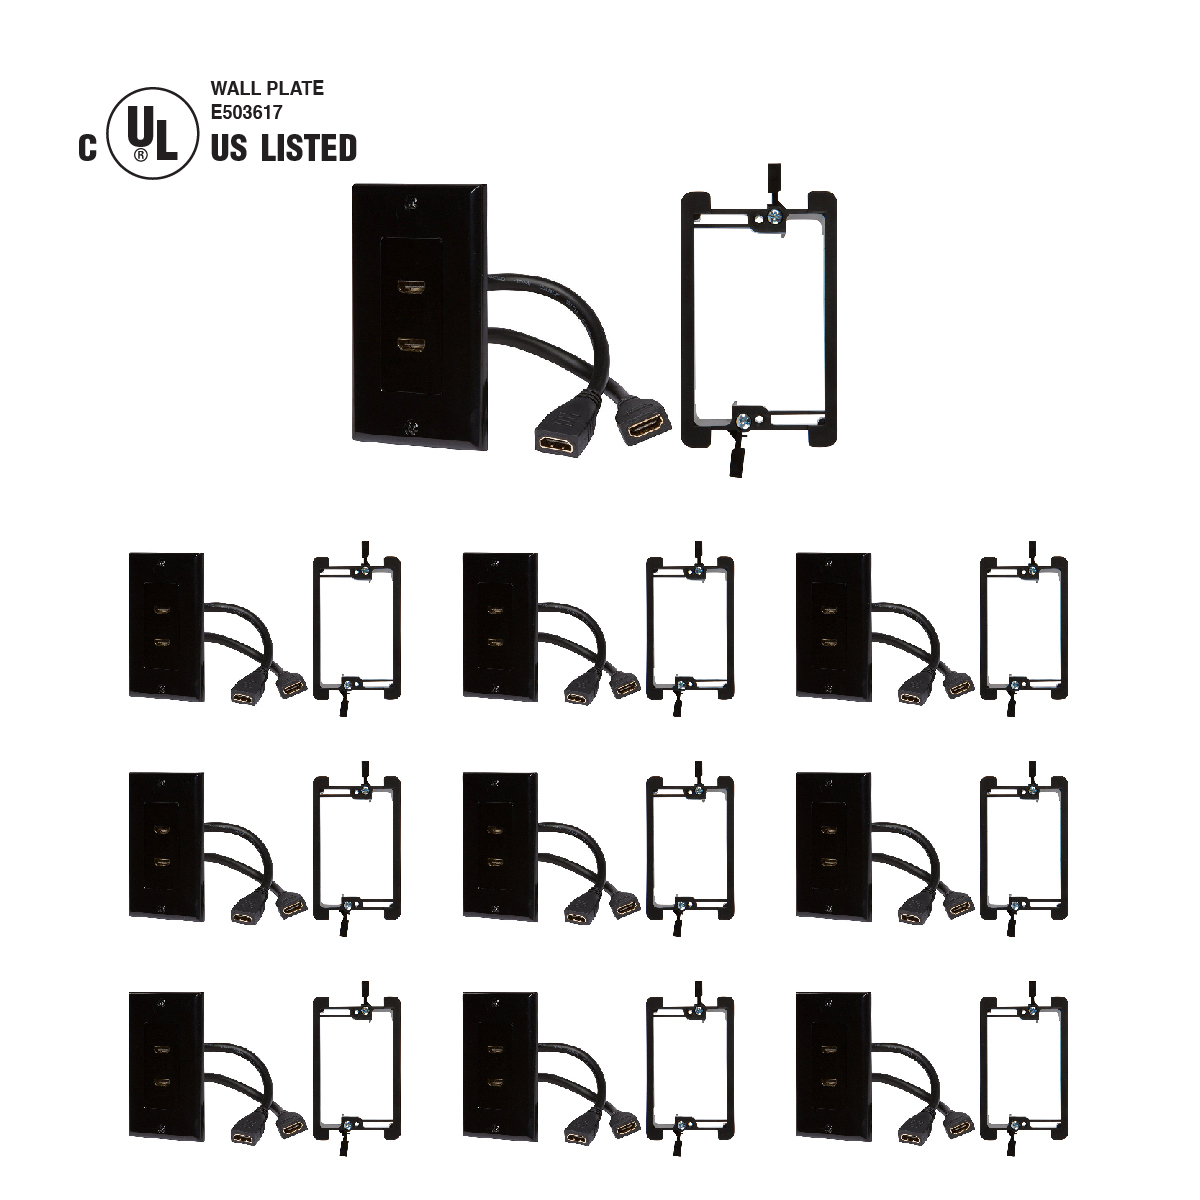 Shop Hdmi Wall Plates With Included Cables In Black